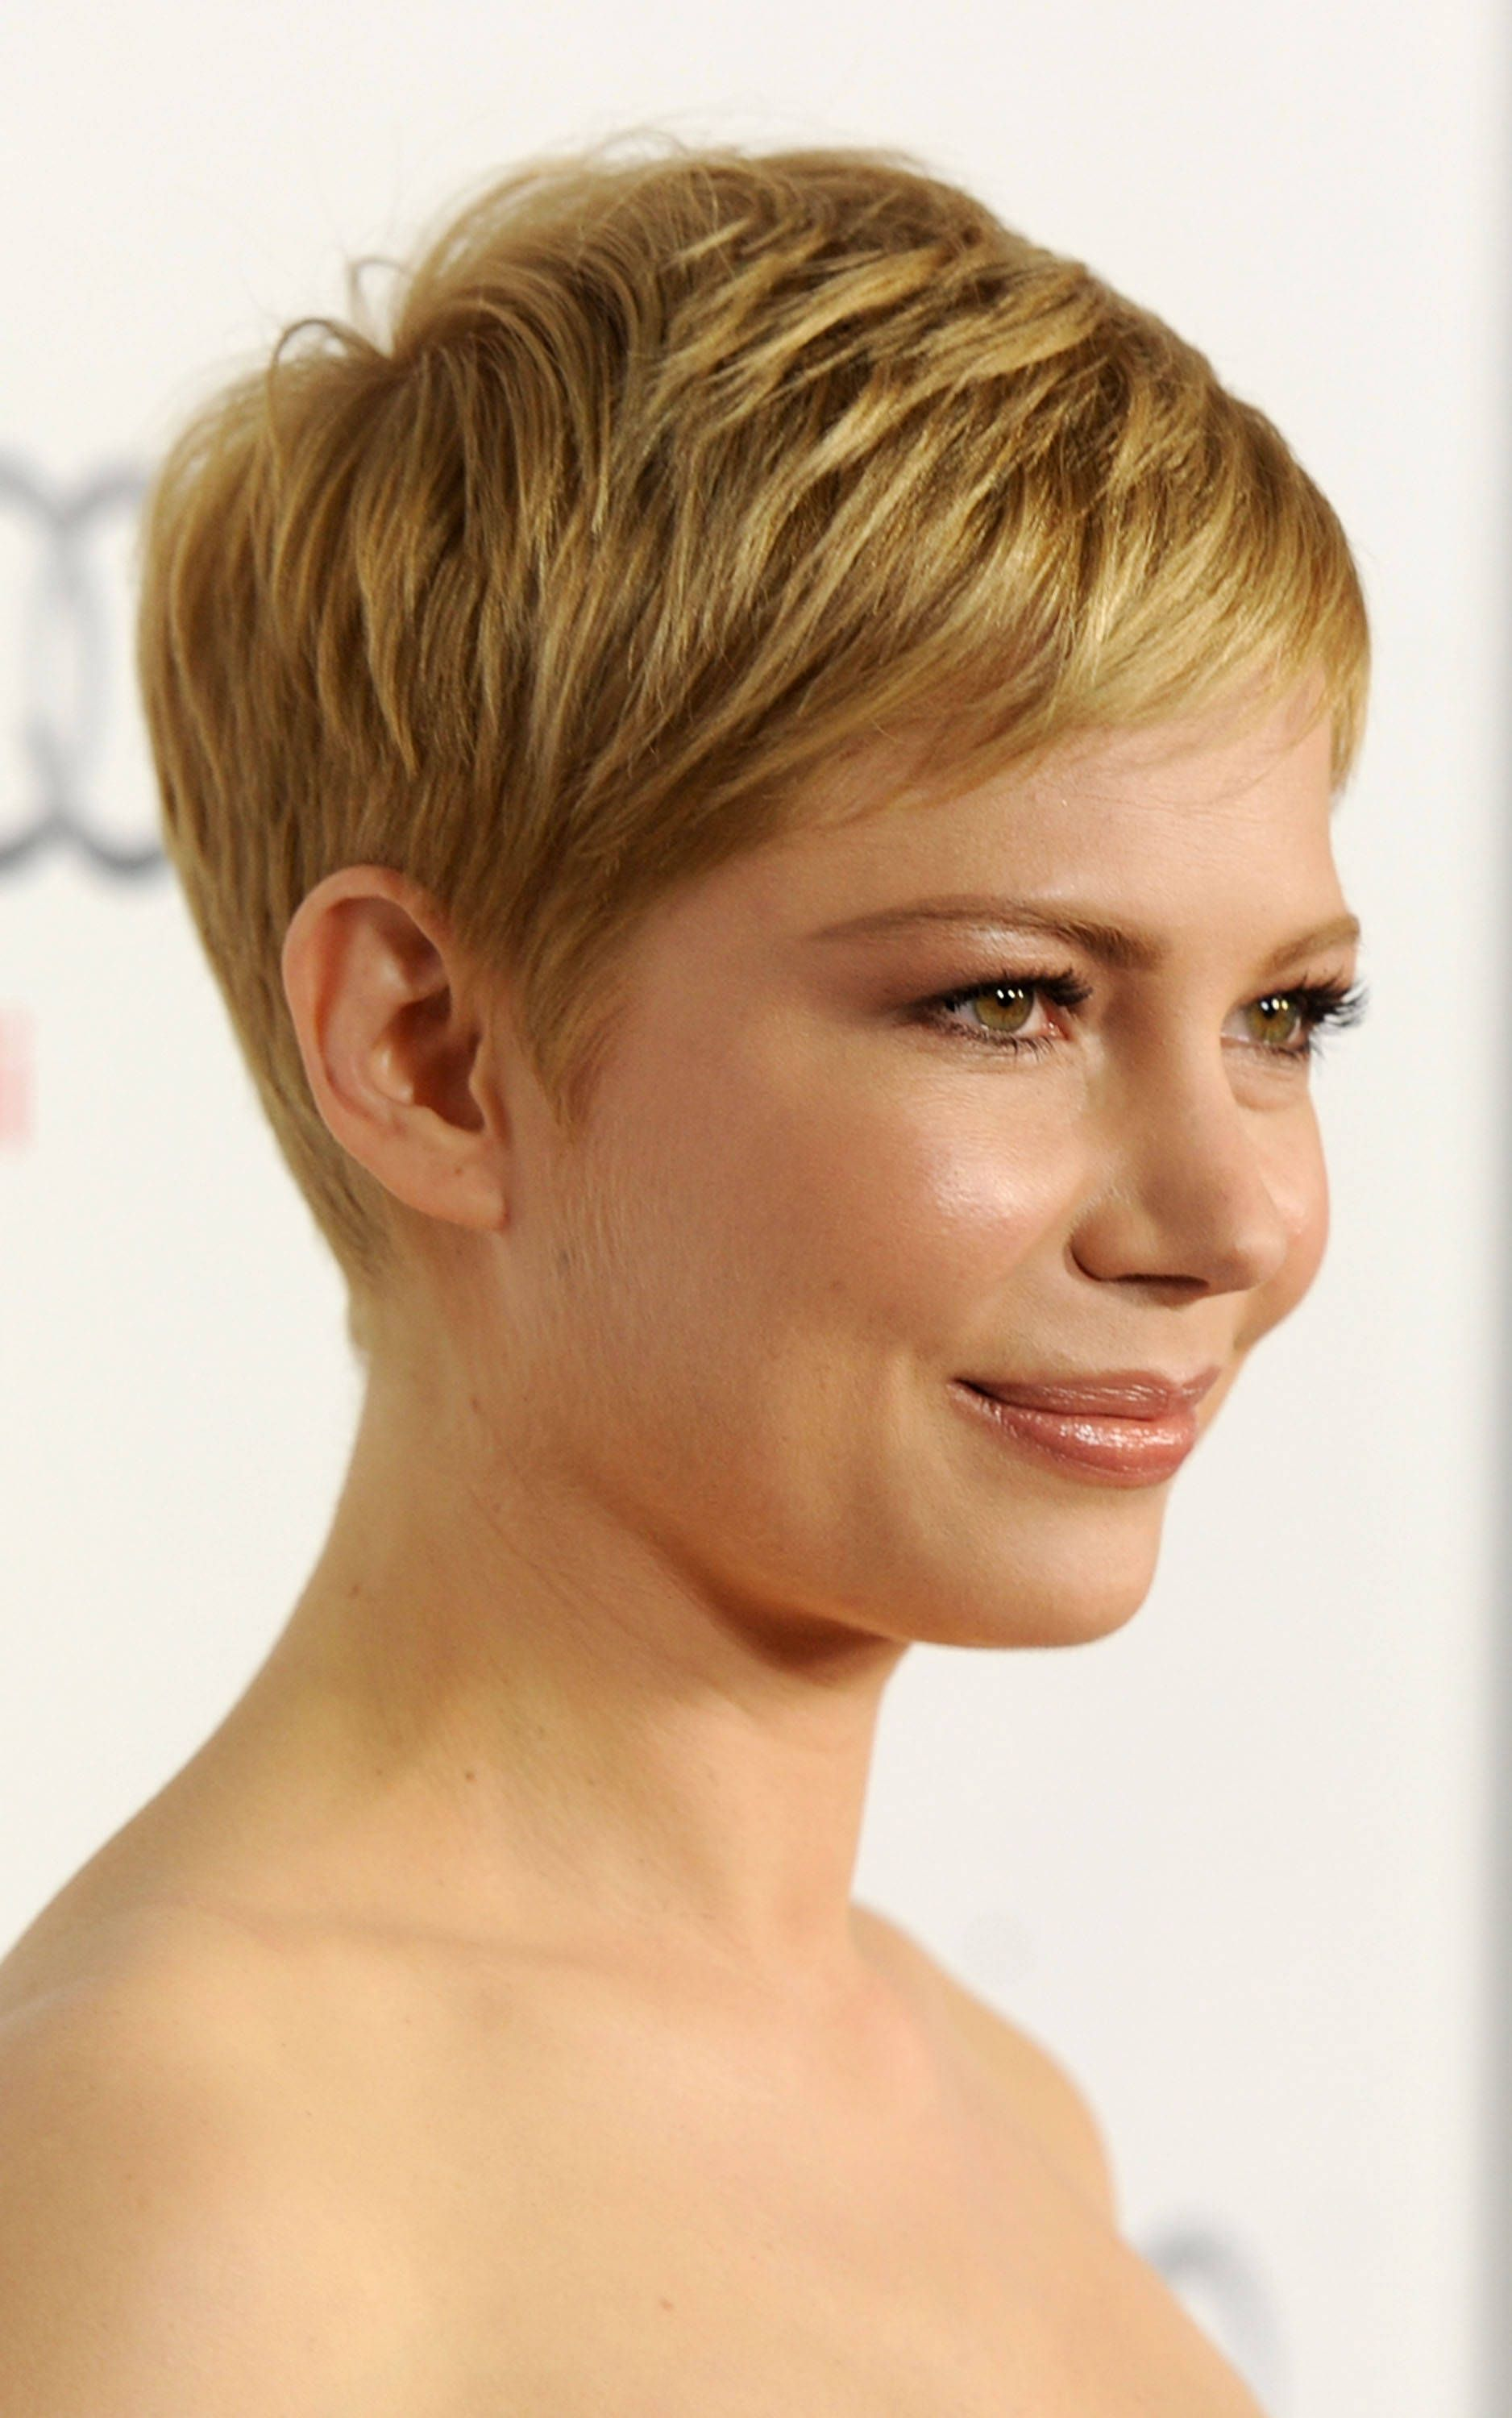 Pixie Hair Cuts Celebrity Pixie Haircut Photo Gallery Pixie Haircuts